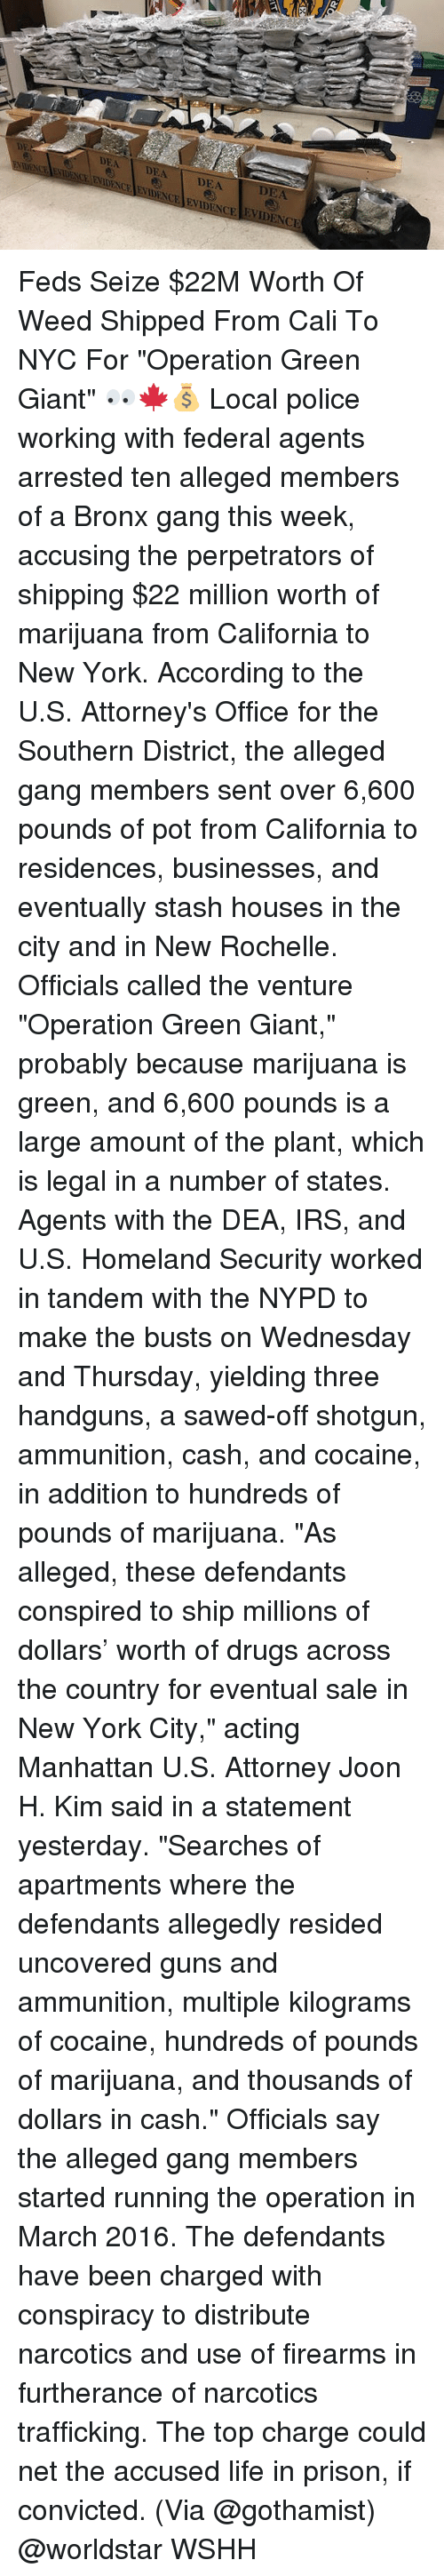 "attorneys: DEA DEA DEA  ENCE FVACEENDENCE ENIDENCE EVIDENCIE  2  DEA Feds Seize $22M Worth Of Weed Shipped From Cali To NYC For ""Operation Green Giant"" 👀🍁💰 Local police working with federal agents arrested ten alleged members of a Bronx gang this week, accusing the perpetrators of shipping $22 million worth of marijuana from California to New York. According to the U.S. Attorney's Office for the Southern District, the alleged gang members sent over 6,600 pounds of pot from California to residences, businesses, and eventually stash houses in the city and in New Rochelle. Officials called the venture ""Operation Green Giant,"" probably because marijuana is green, and 6,600 pounds is a large amount of the plant, which is legal in a number of states. Agents with the DEA, IRS, and U.S. Homeland Security worked in tandem with the NYPD to make the busts on Wednesday and Thursday, yielding three handguns, a sawed-off shotgun, ammunition, cash, and cocaine, in addition to hundreds of pounds of marijuana. ""As alleged, these defendants conspired to ship millions of dollars' worth of drugs across the country for eventual sale in New York City,"" acting Manhattan U.S. Attorney Joon H. Kim said in a statement yesterday. ""Searches of apartments where the defendants allegedly resided uncovered guns and ammunition, multiple kilograms of cocaine, hundreds of pounds of marijuana, and thousands of dollars in cash."" Officials say the alleged gang members started running the operation in March 2016. The defendants have been charged with conspiracy to distribute narcotics and use of firearms in furtherance of narcotics trafficking. The top charge could net the accused life in prison, if convicted. (Via @gothamist) @worldstar WSHH"